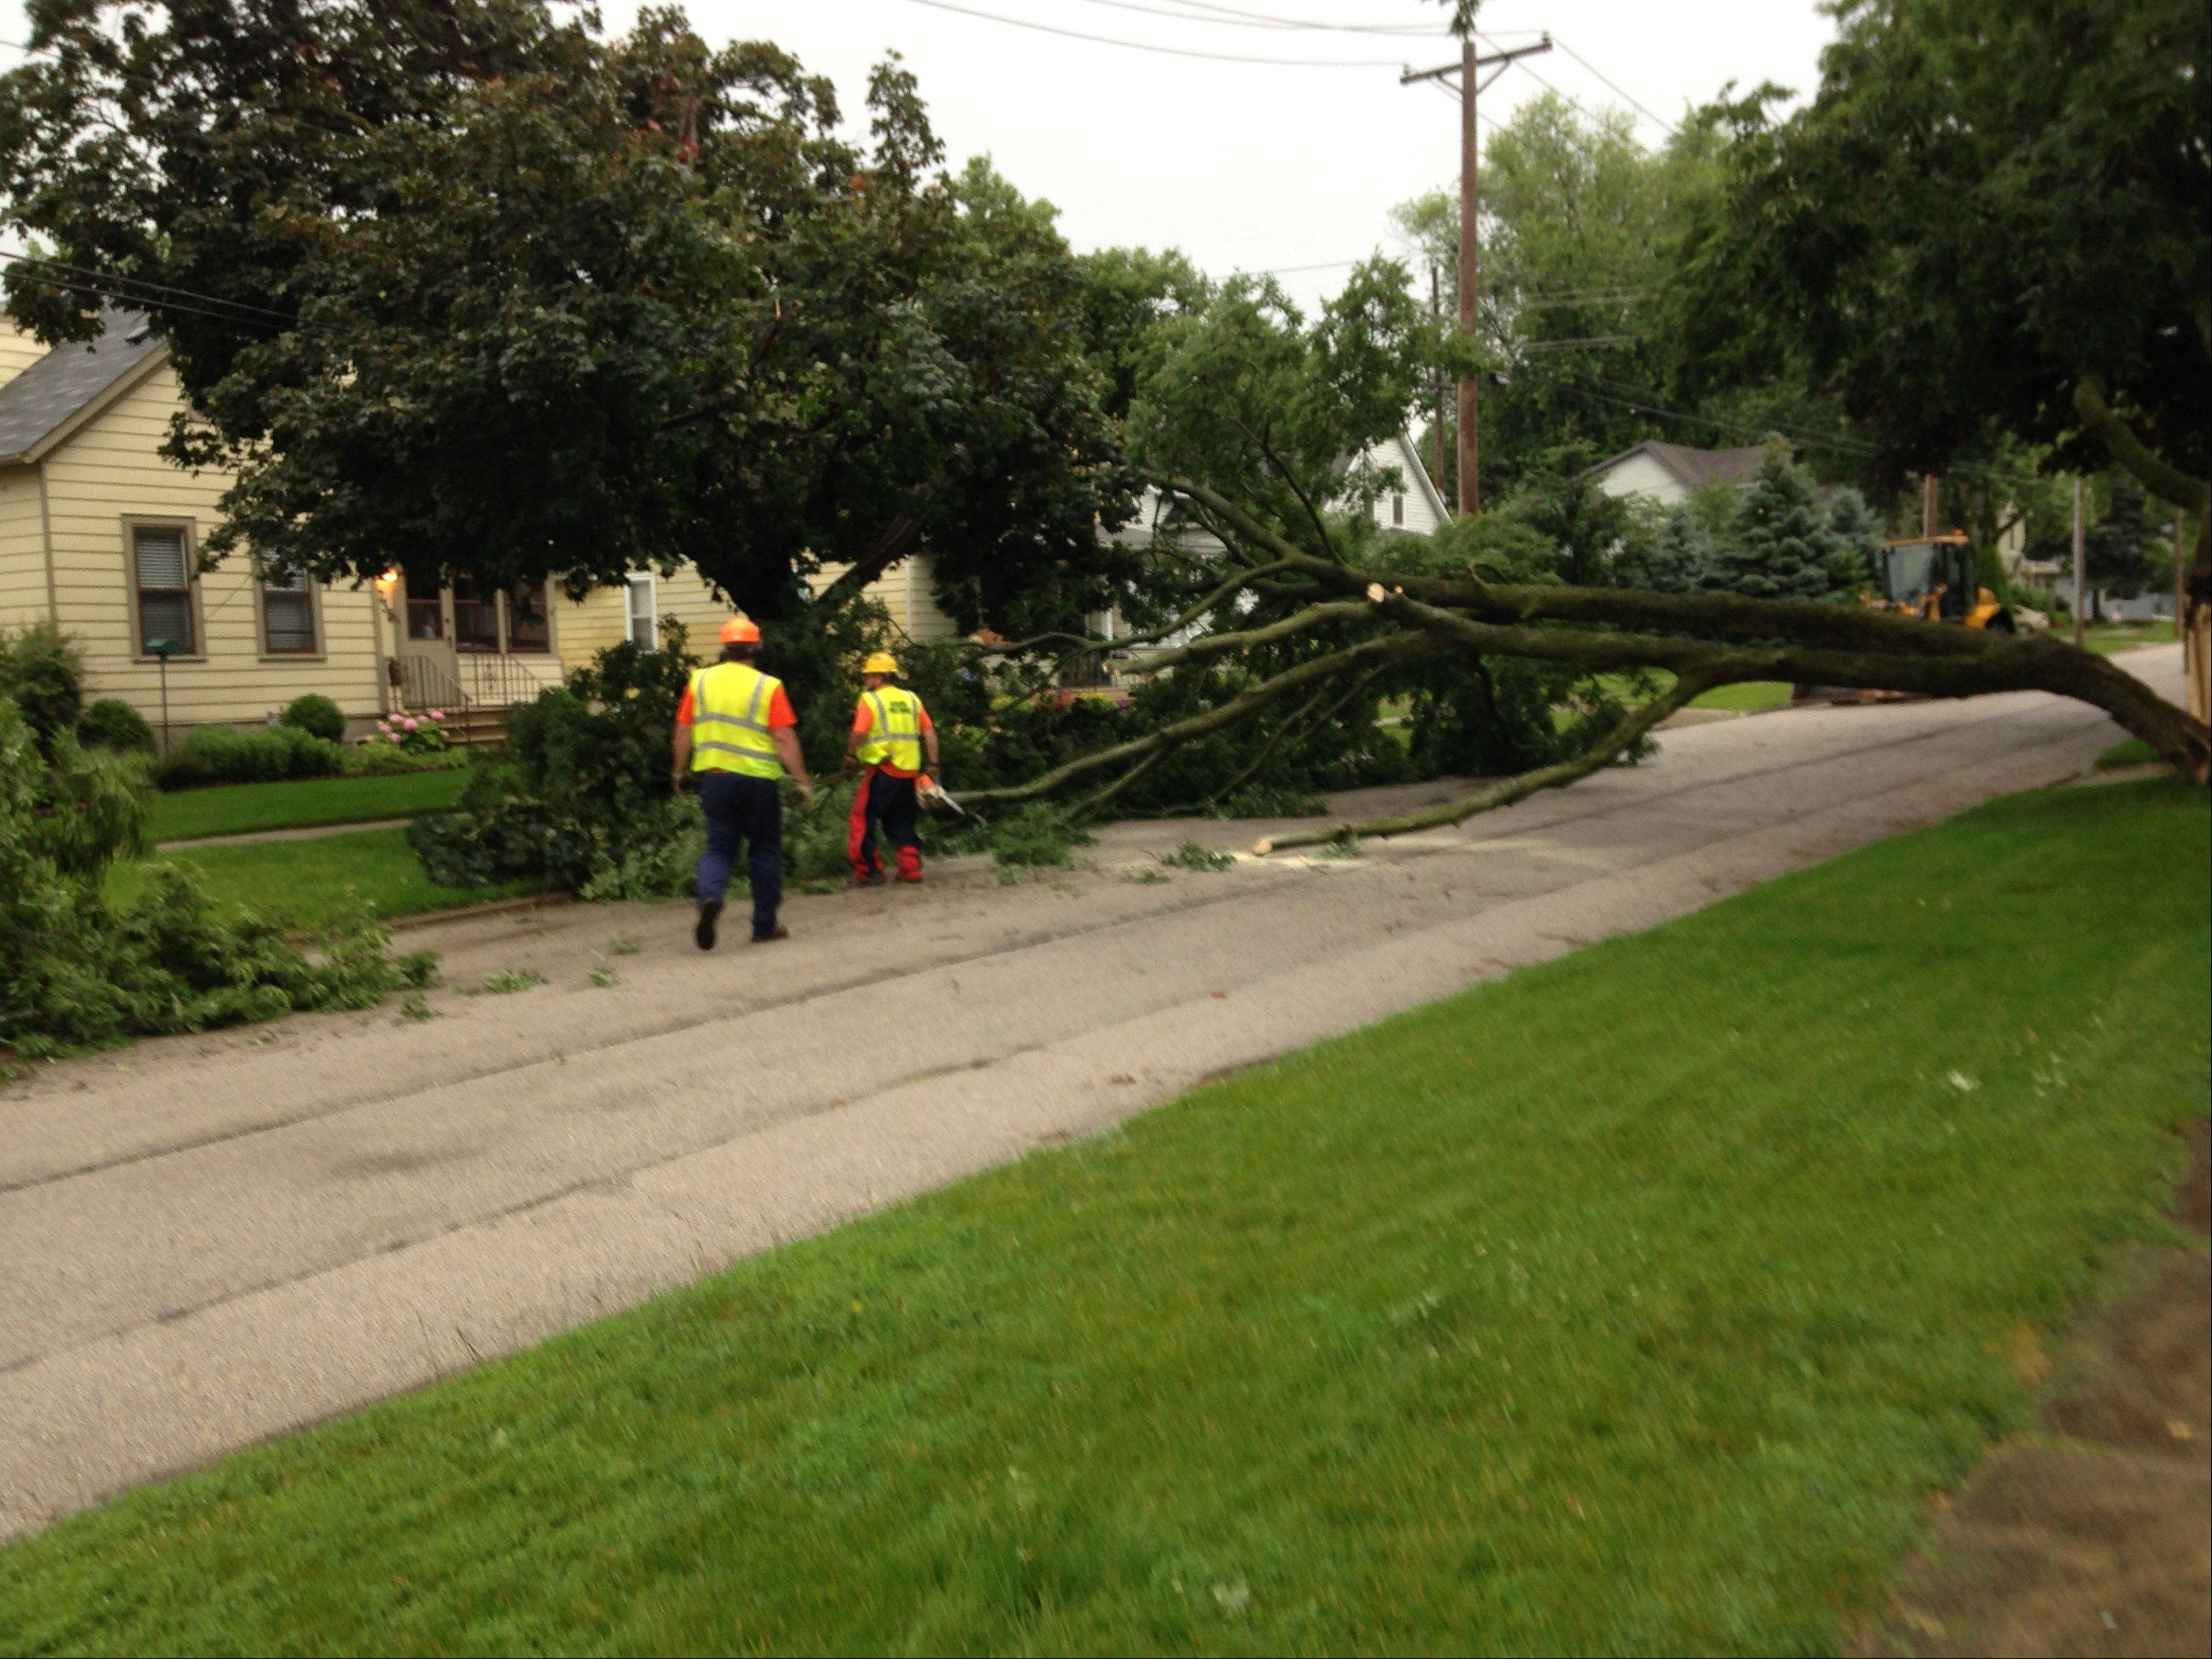 Workers deal with a downed tree Monday night in Batavia.